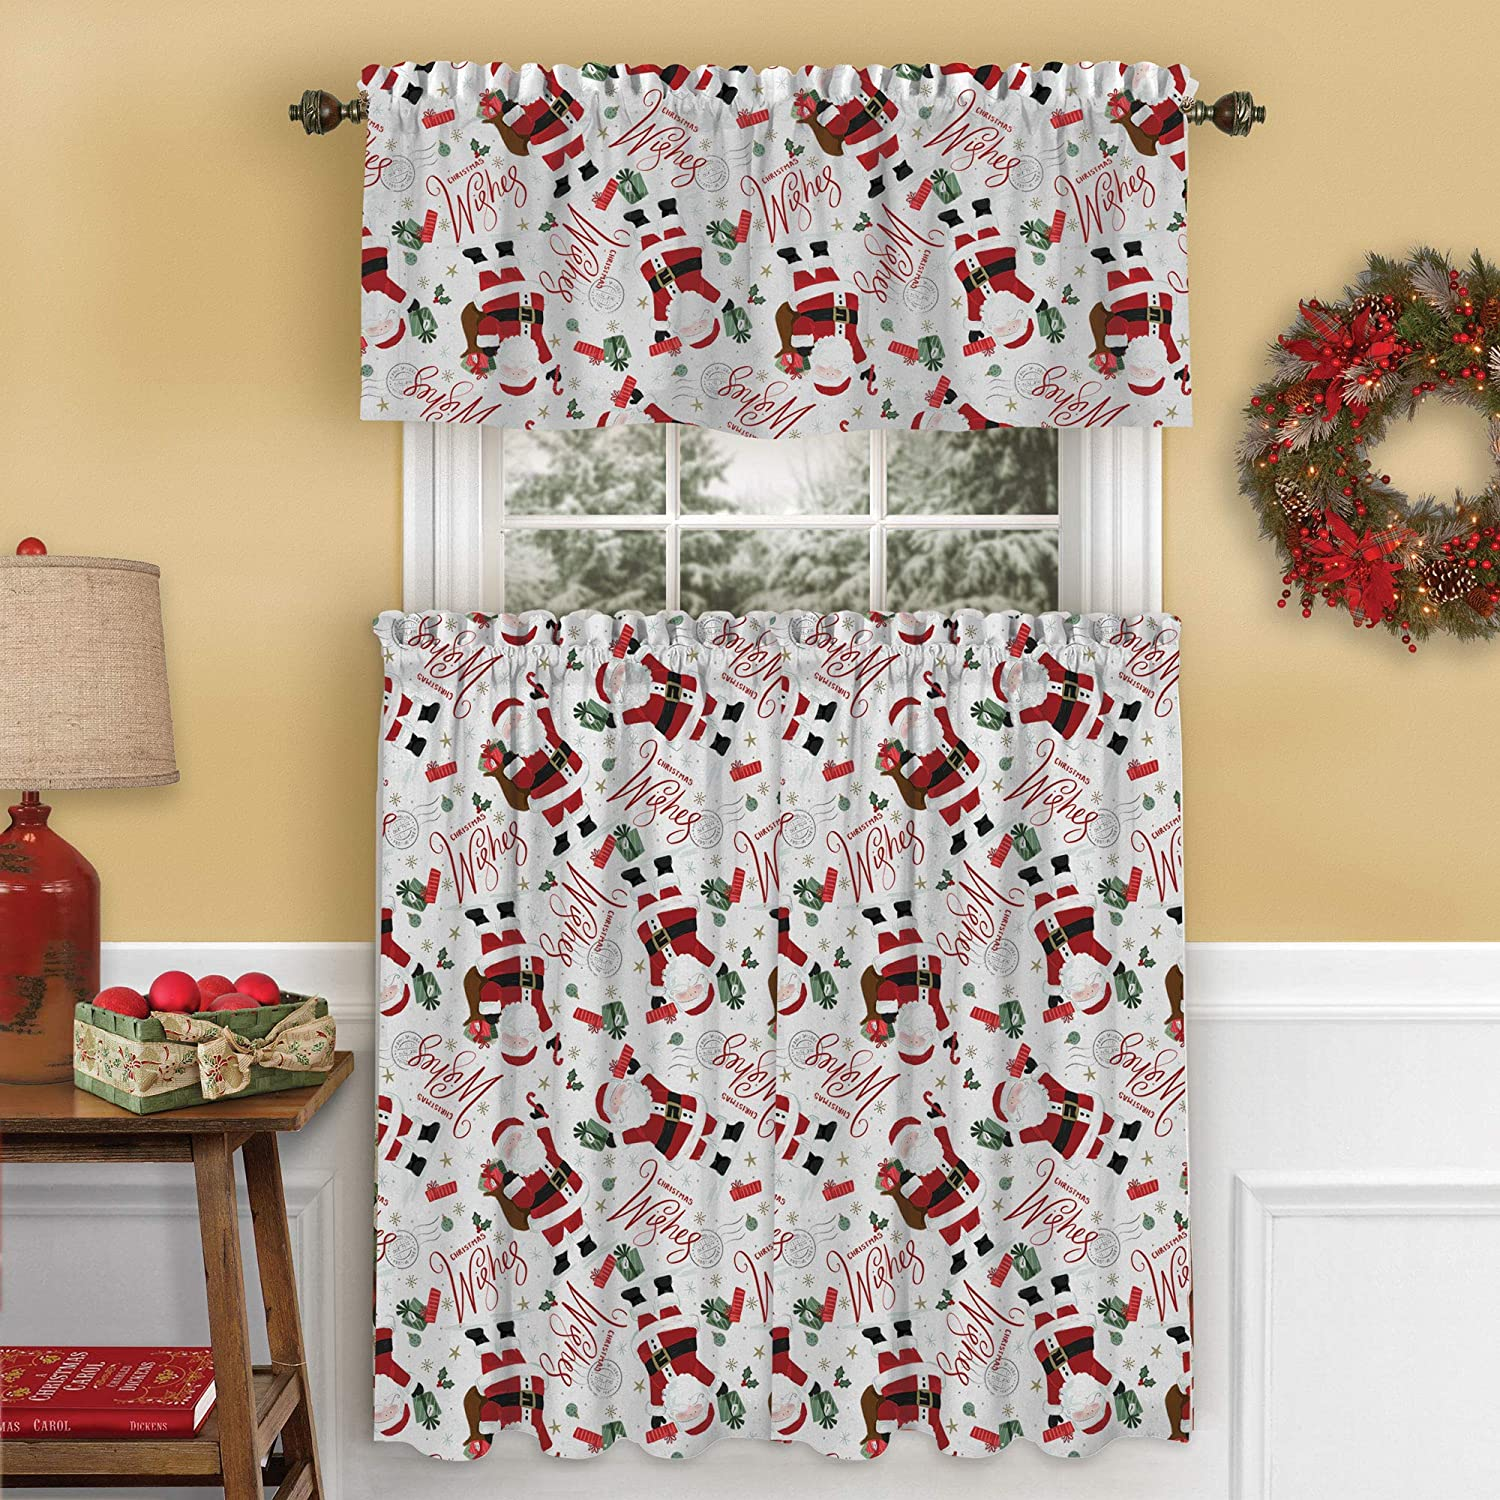 Elrene Home Fashions Santa Christmas Wishes Holiday Kitchen/Café and Bath Tiers and Valance, 3 Piece Set, 30